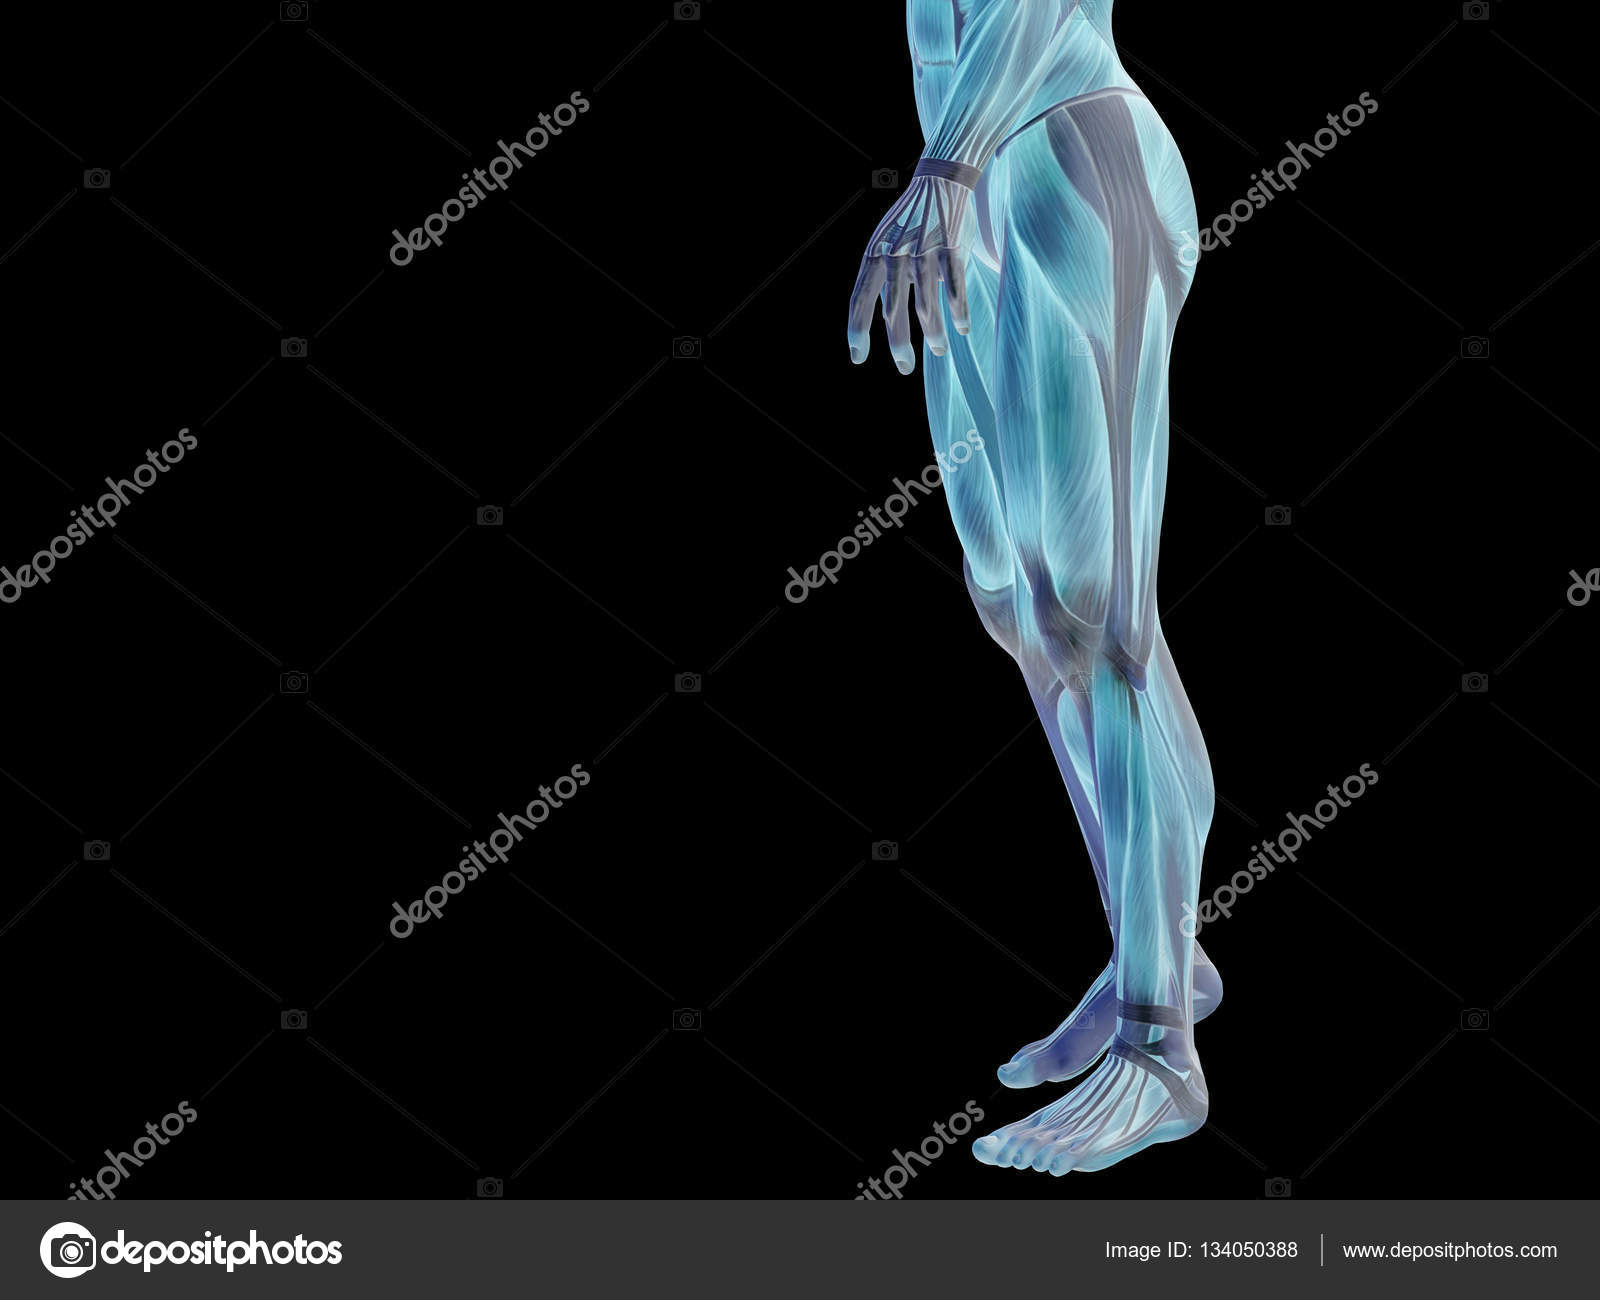 Man Anatomy Lower Body Stock Photo Design36 134050388